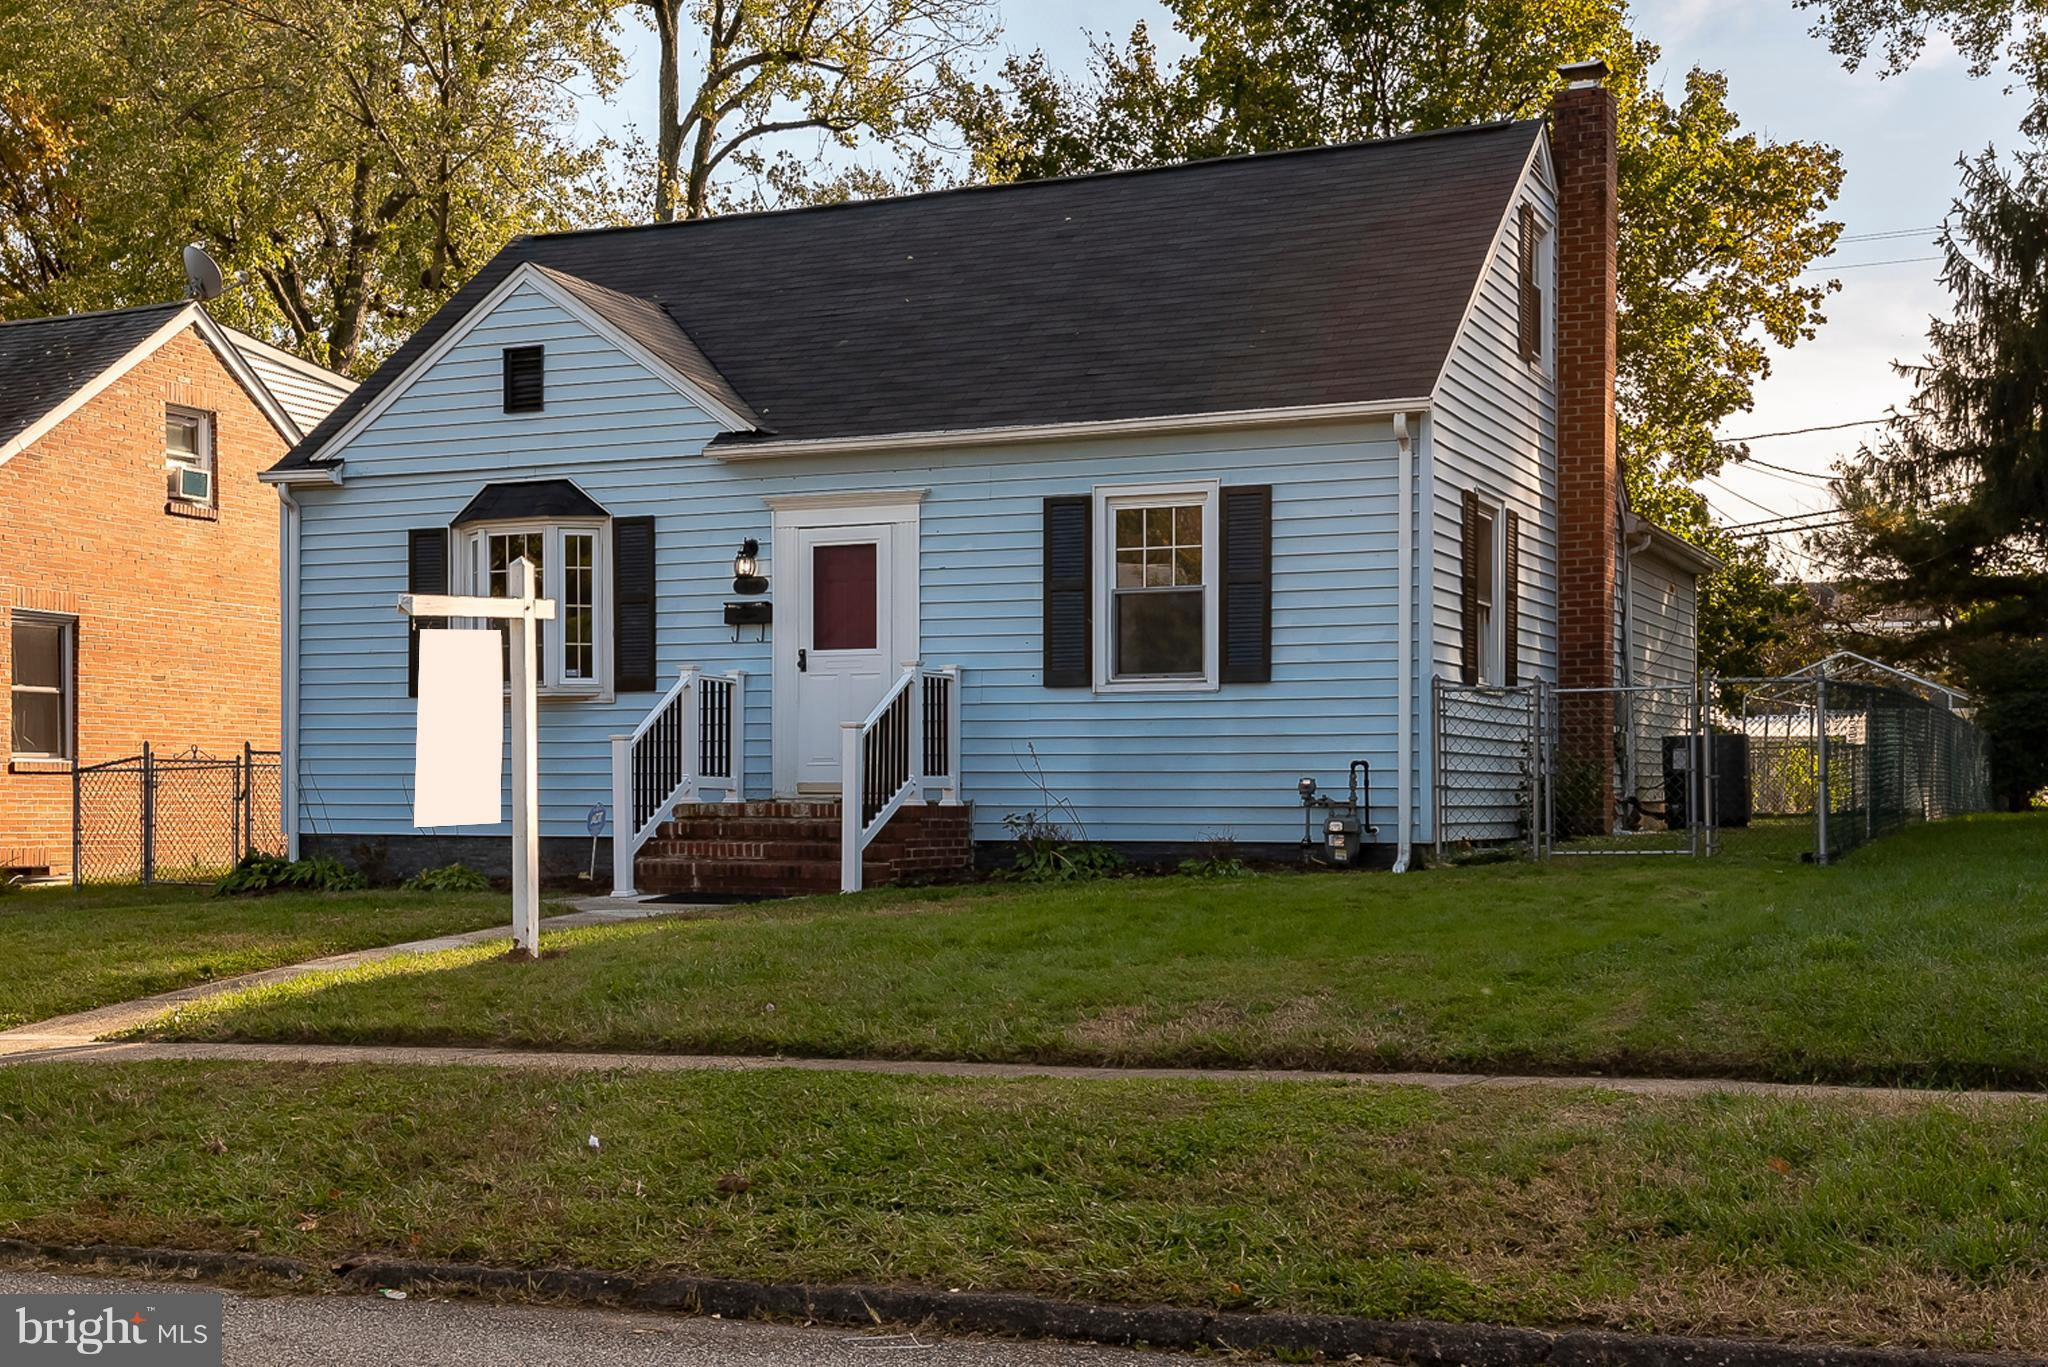 423 SHIPLEY ROAD, LINTHICUM HEIGHTS, MD 21090